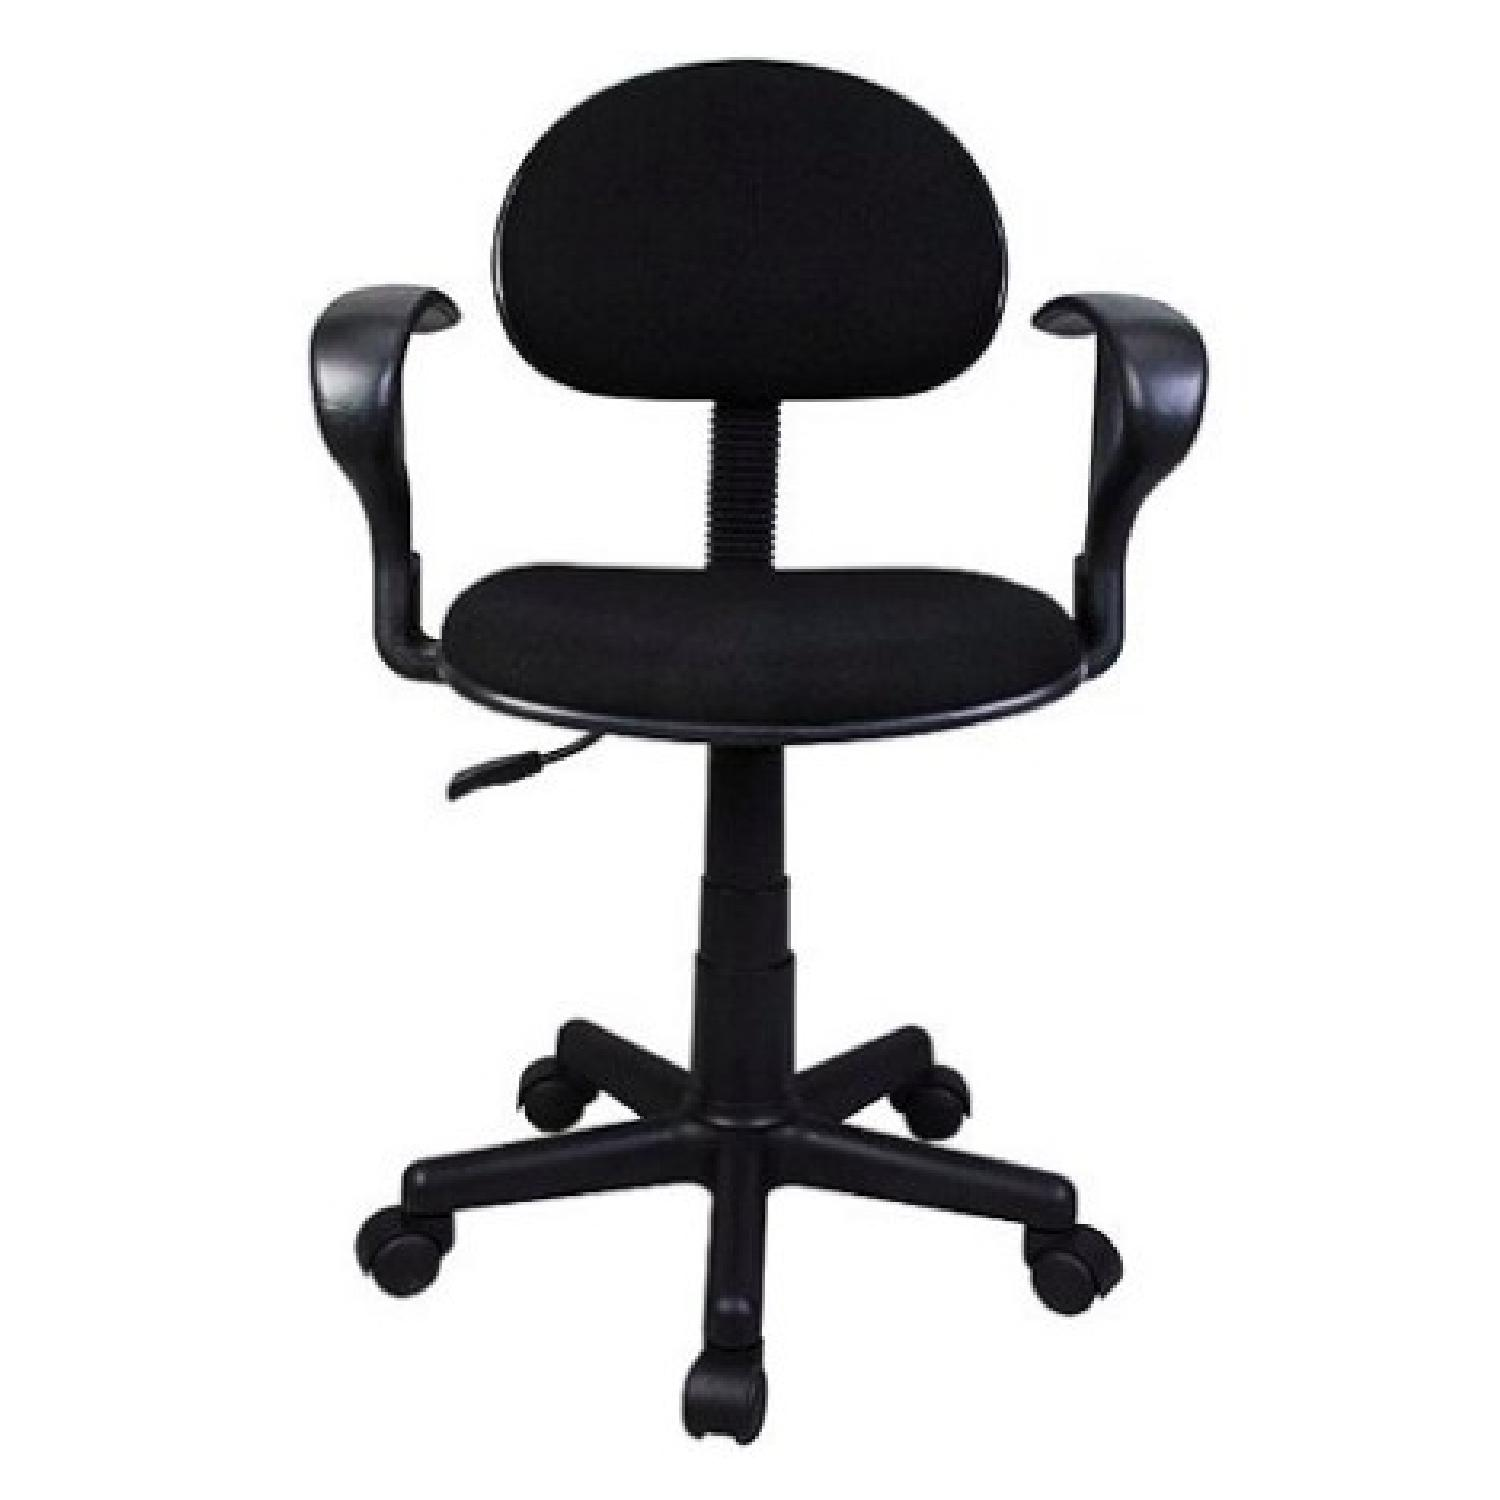 Black Task Chair w/ arms